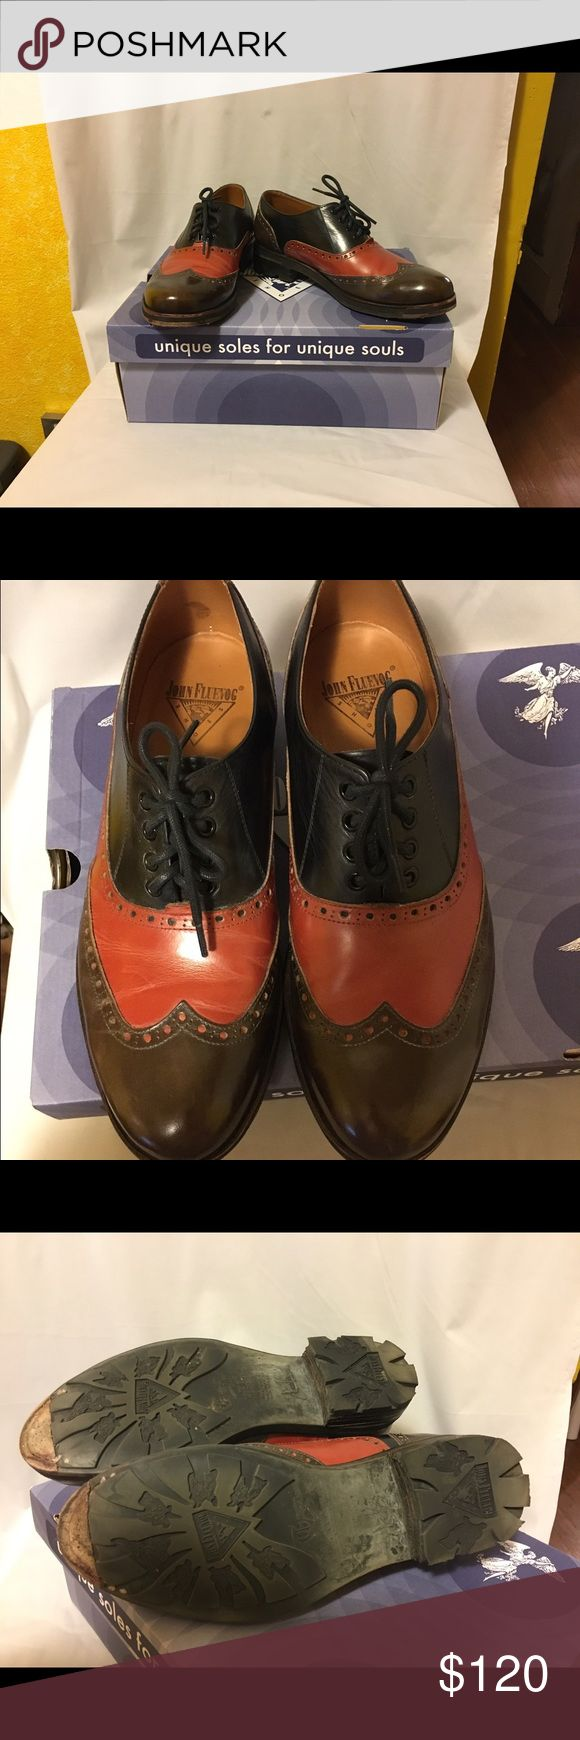 John Fluevog Guardian Angels Andrew Men's size 8.5 (approx women's 10.5) Only worn a few times and still in excellent condition. The soles at the toes were repaired by Fluevog under warranty. Ships with box. John Fluevog Shoes Flats & Loafers